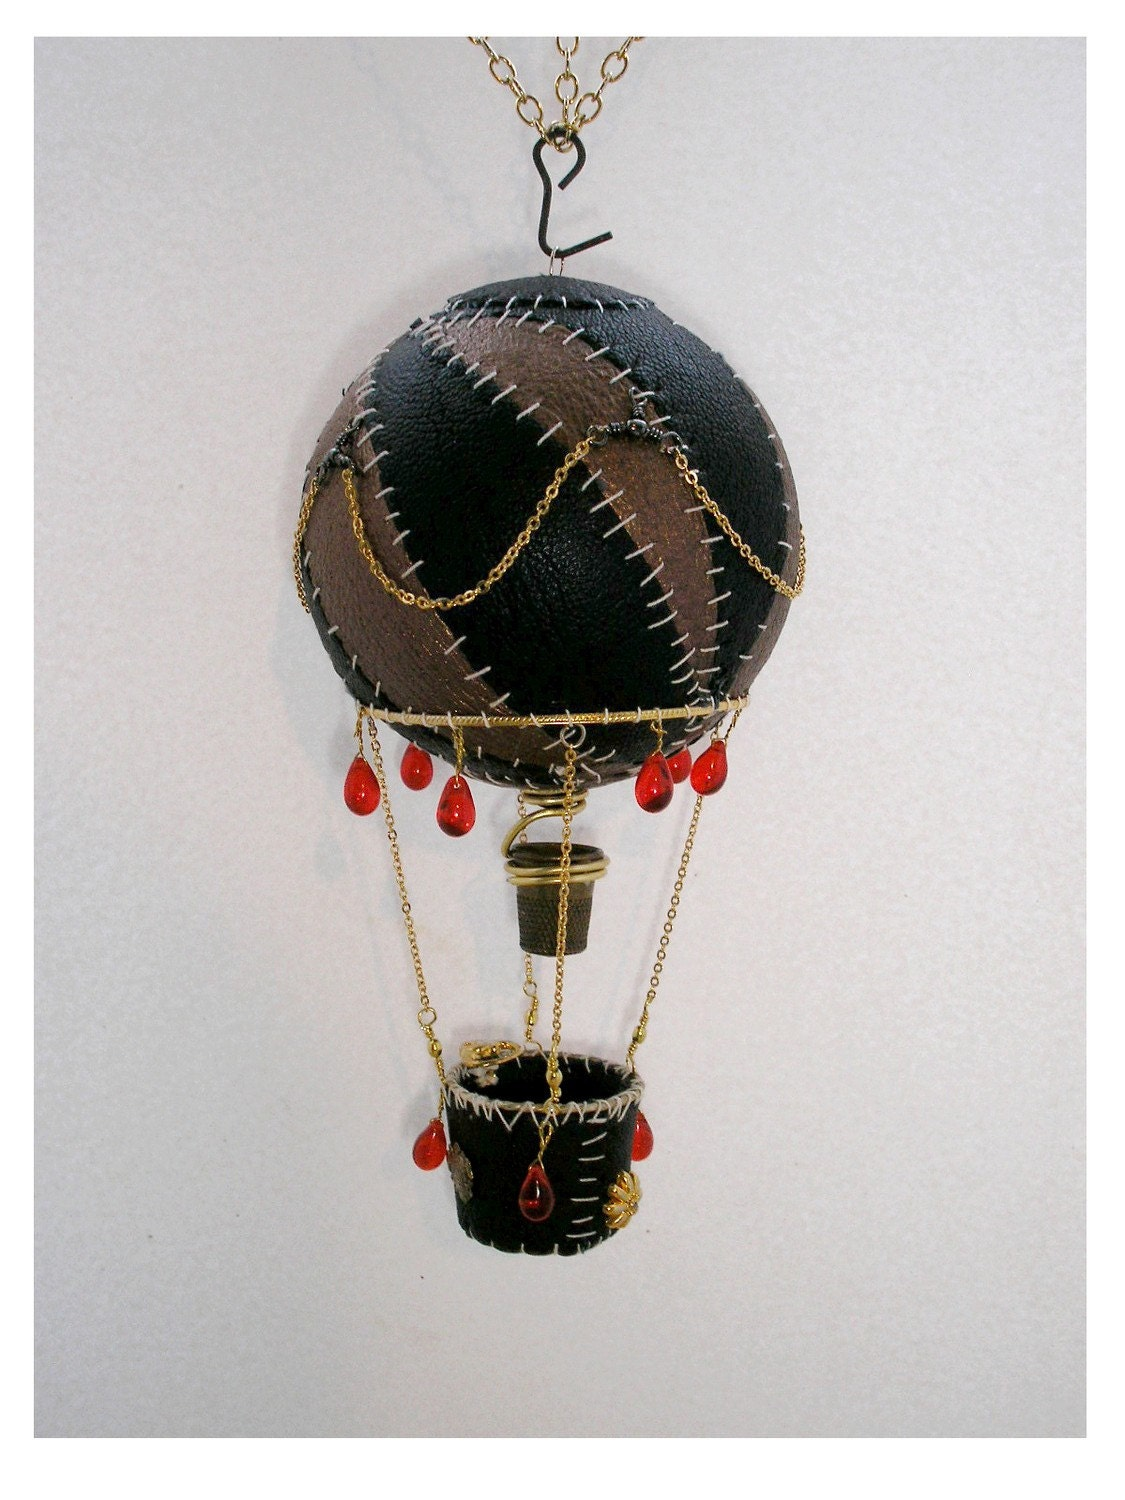 Altered art leather mobile mini air balloon Sunrise by pushok1983